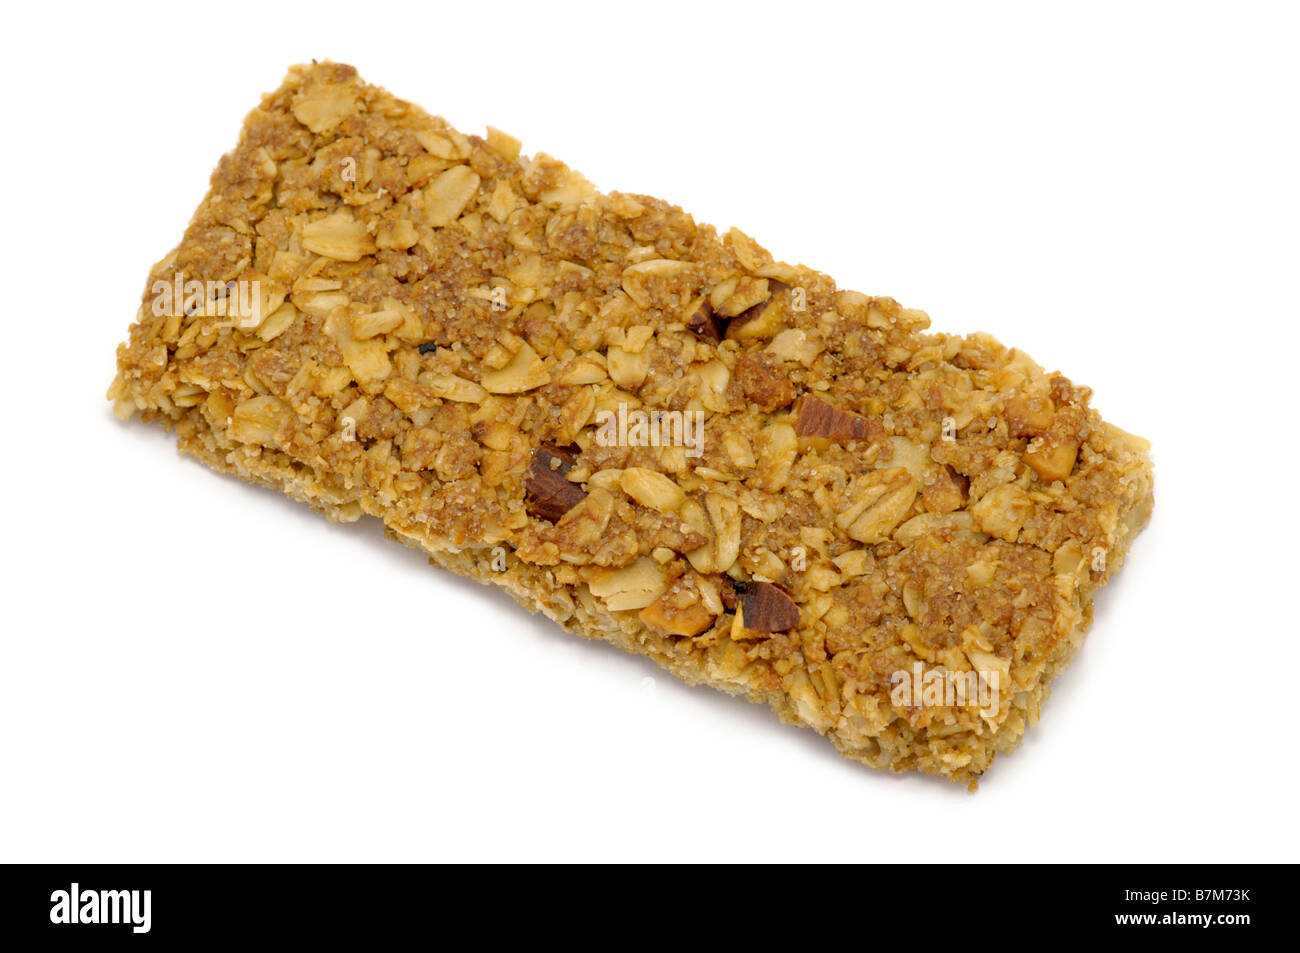 Granola Bars - Stock Image